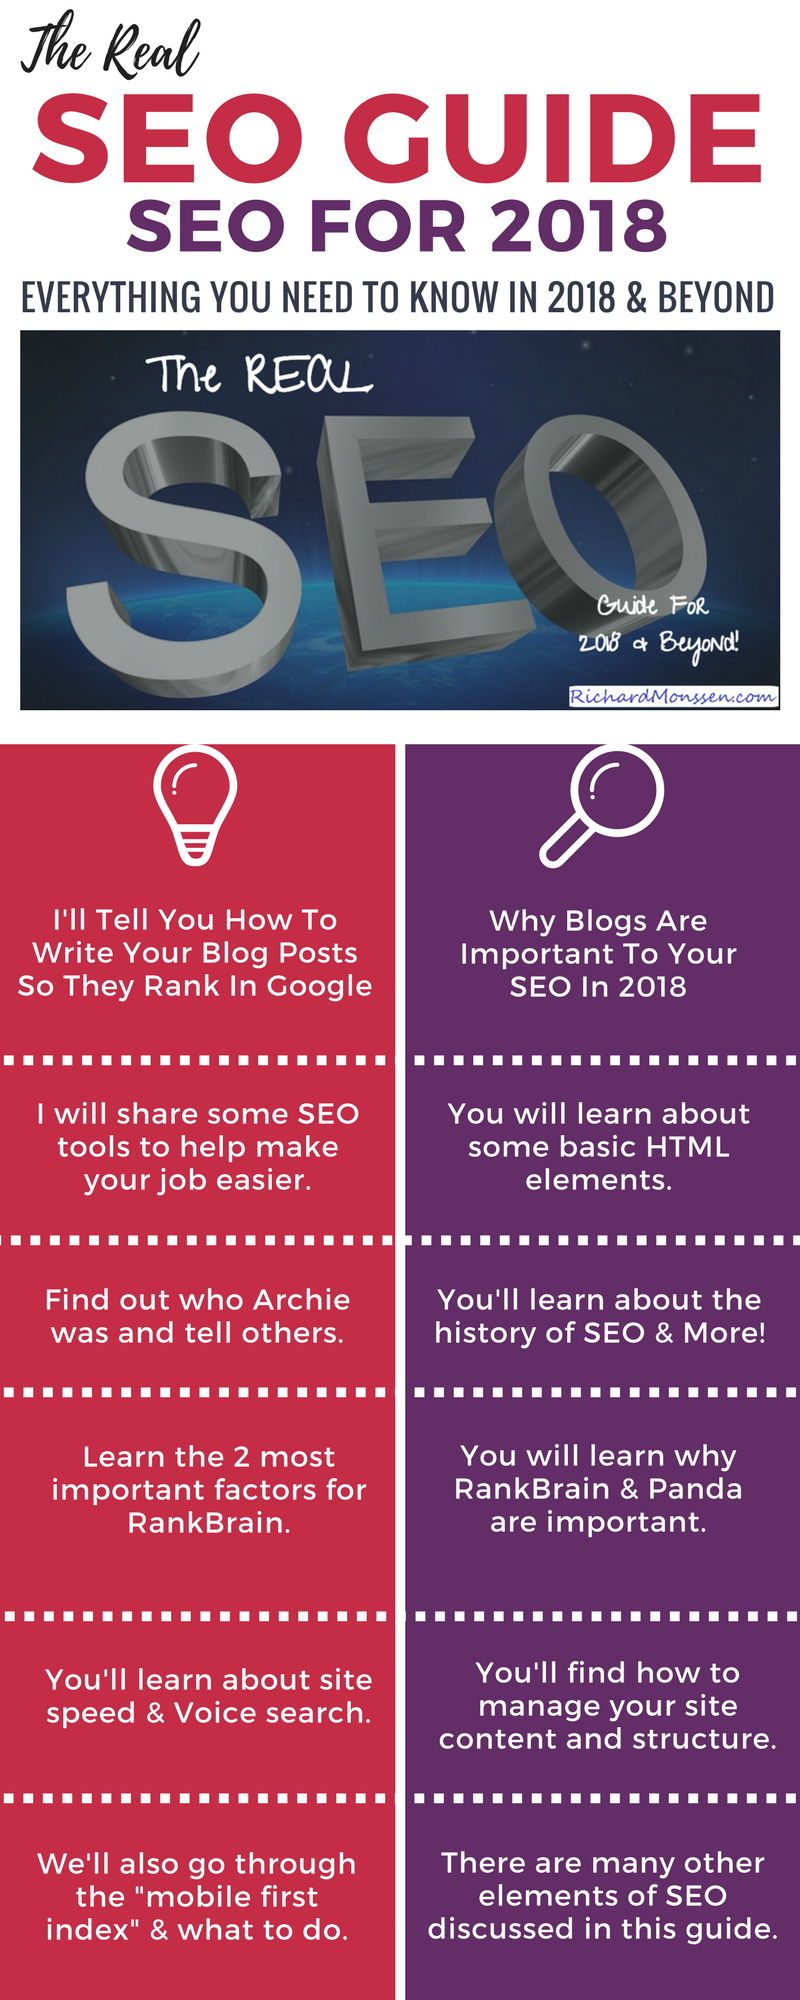 SEO Guide 2018 - Infographic